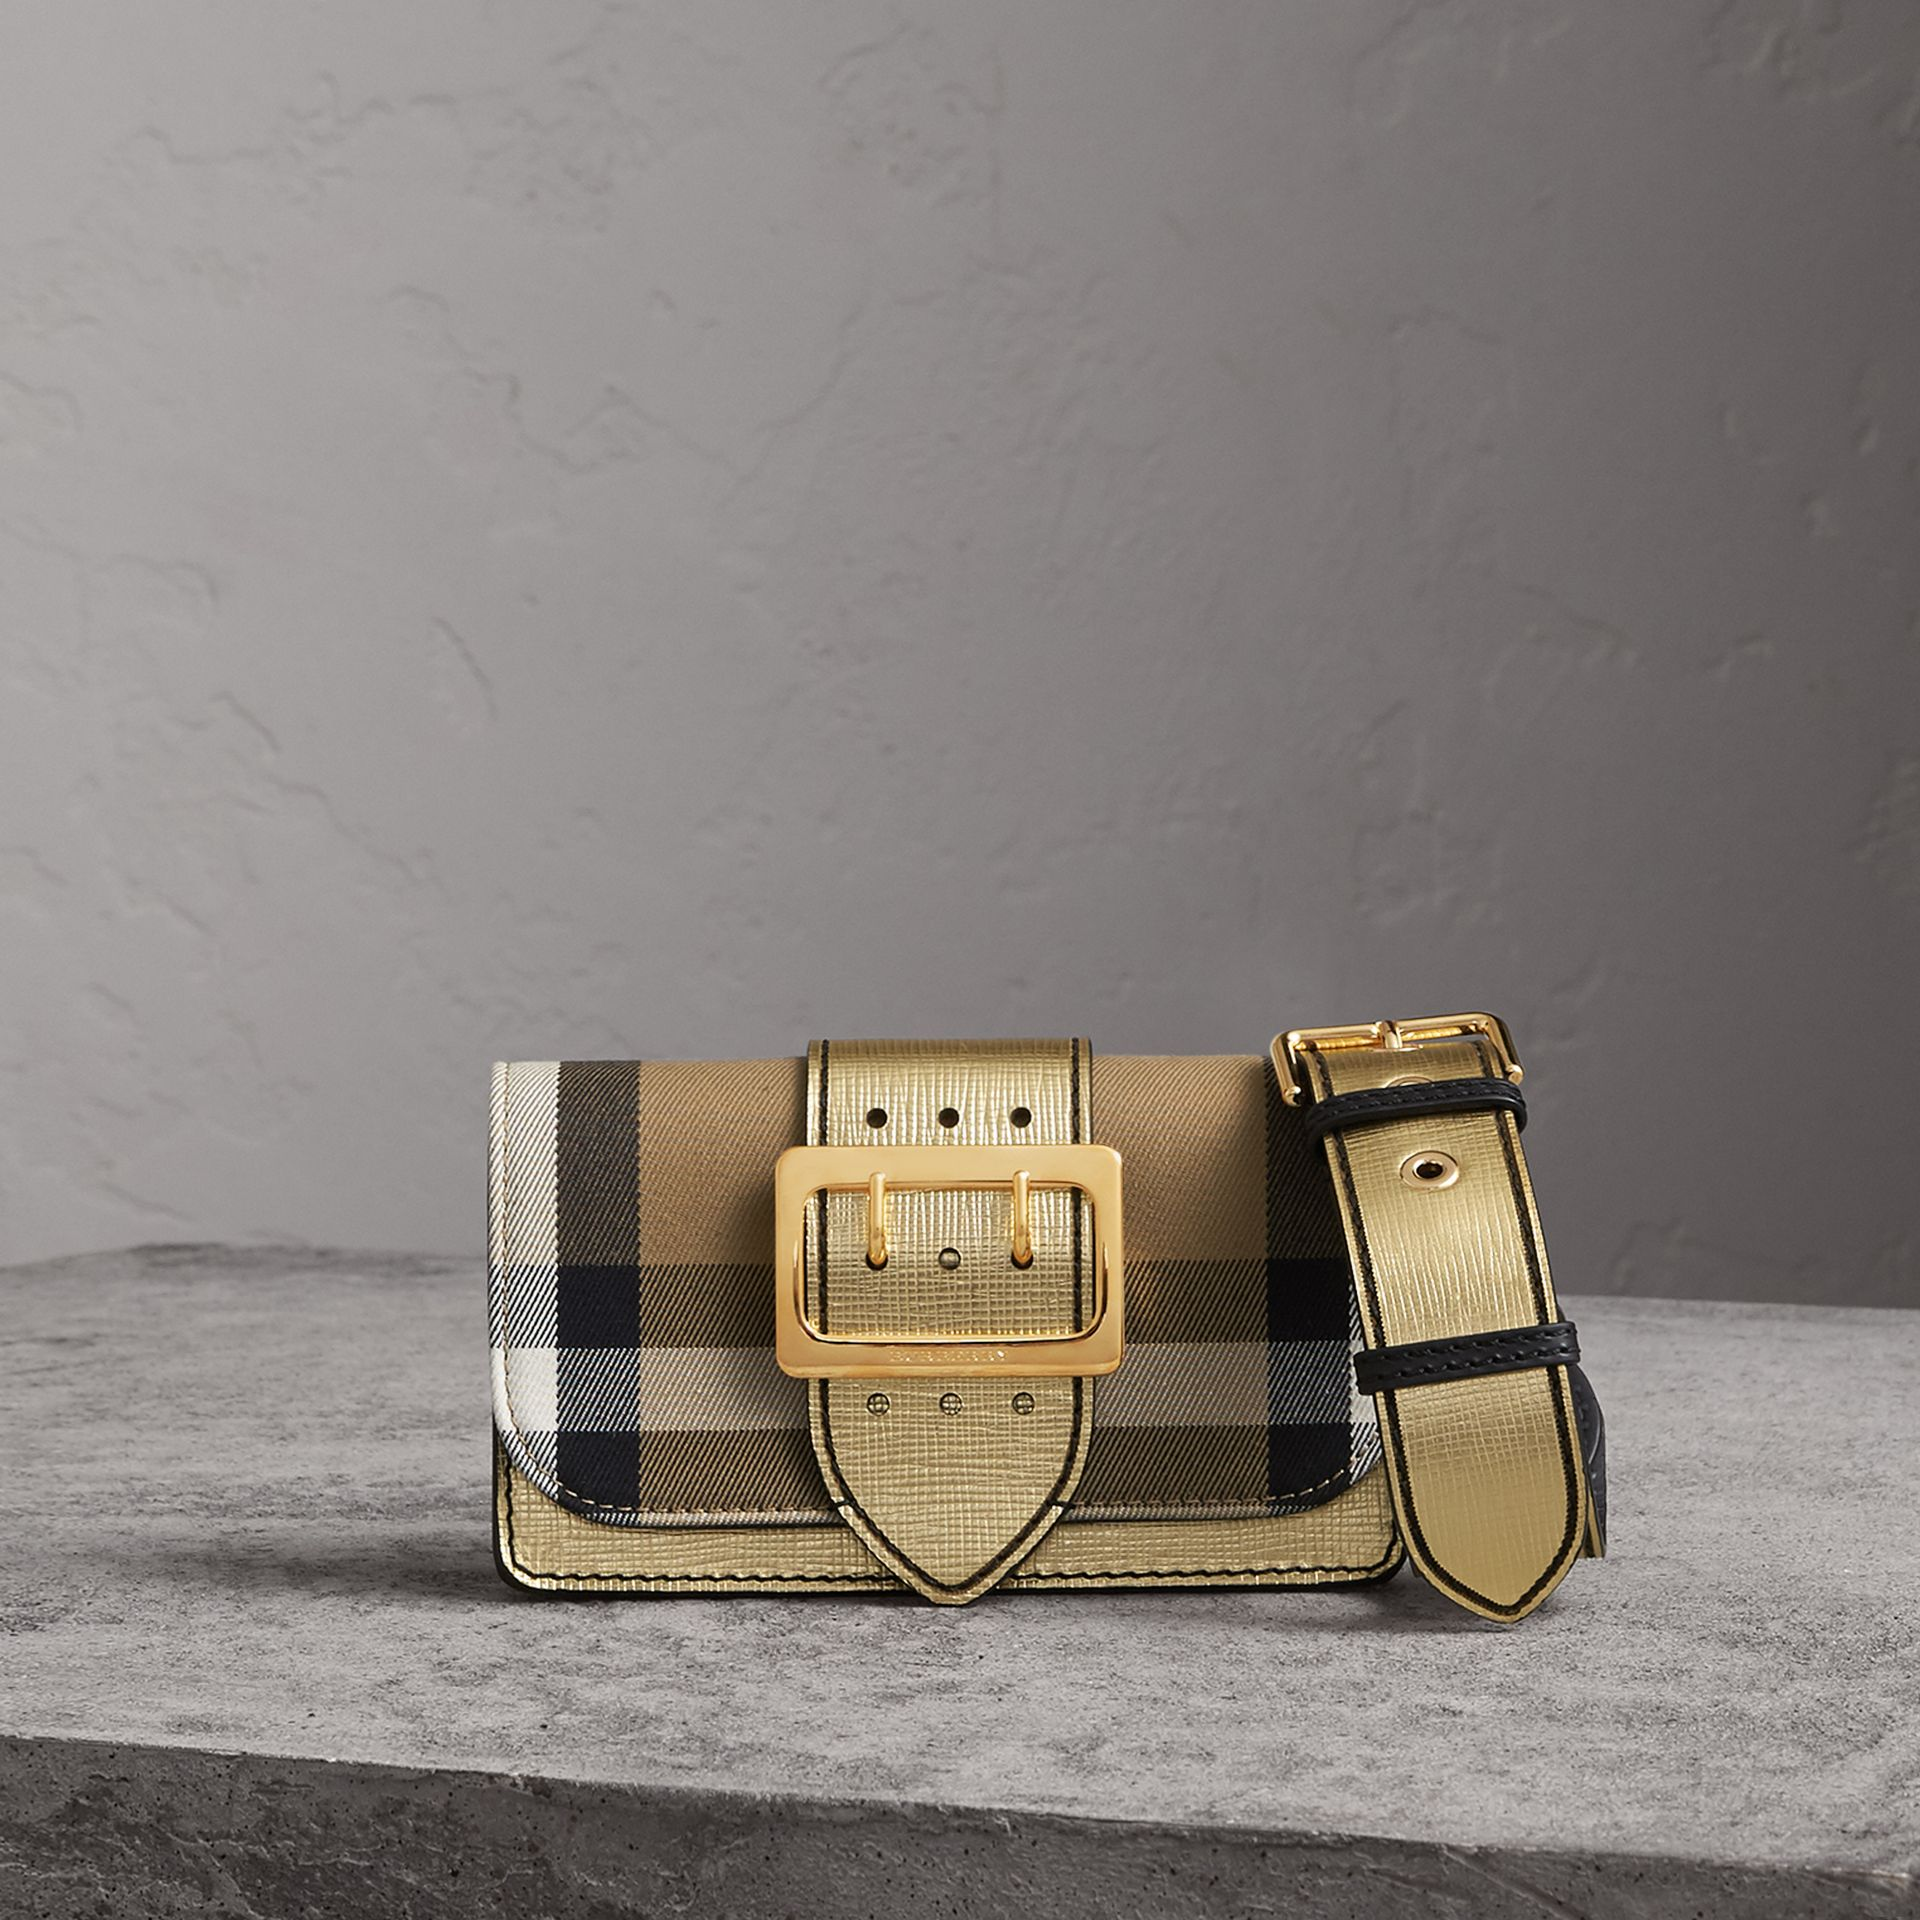 Petit sac The Buckle en coton House check et cuir (Or) - Femme | Burberry Canada - photo de la galerie 0